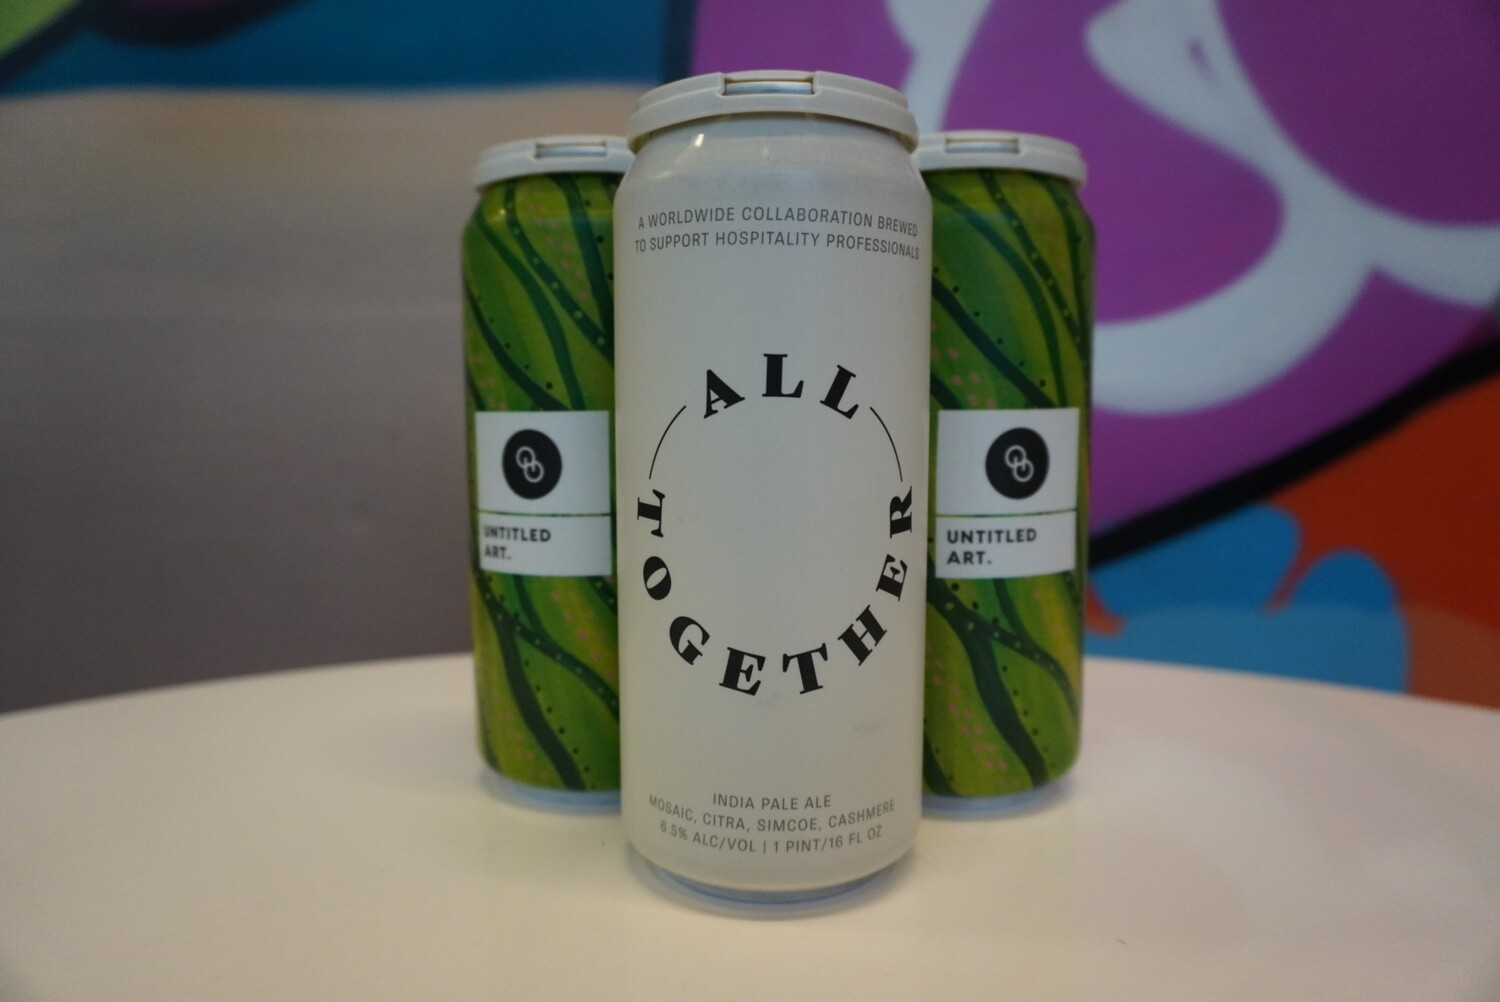 Untitled Art - All Together Now - New England IPA - 6.5% ABV - 4 Pack